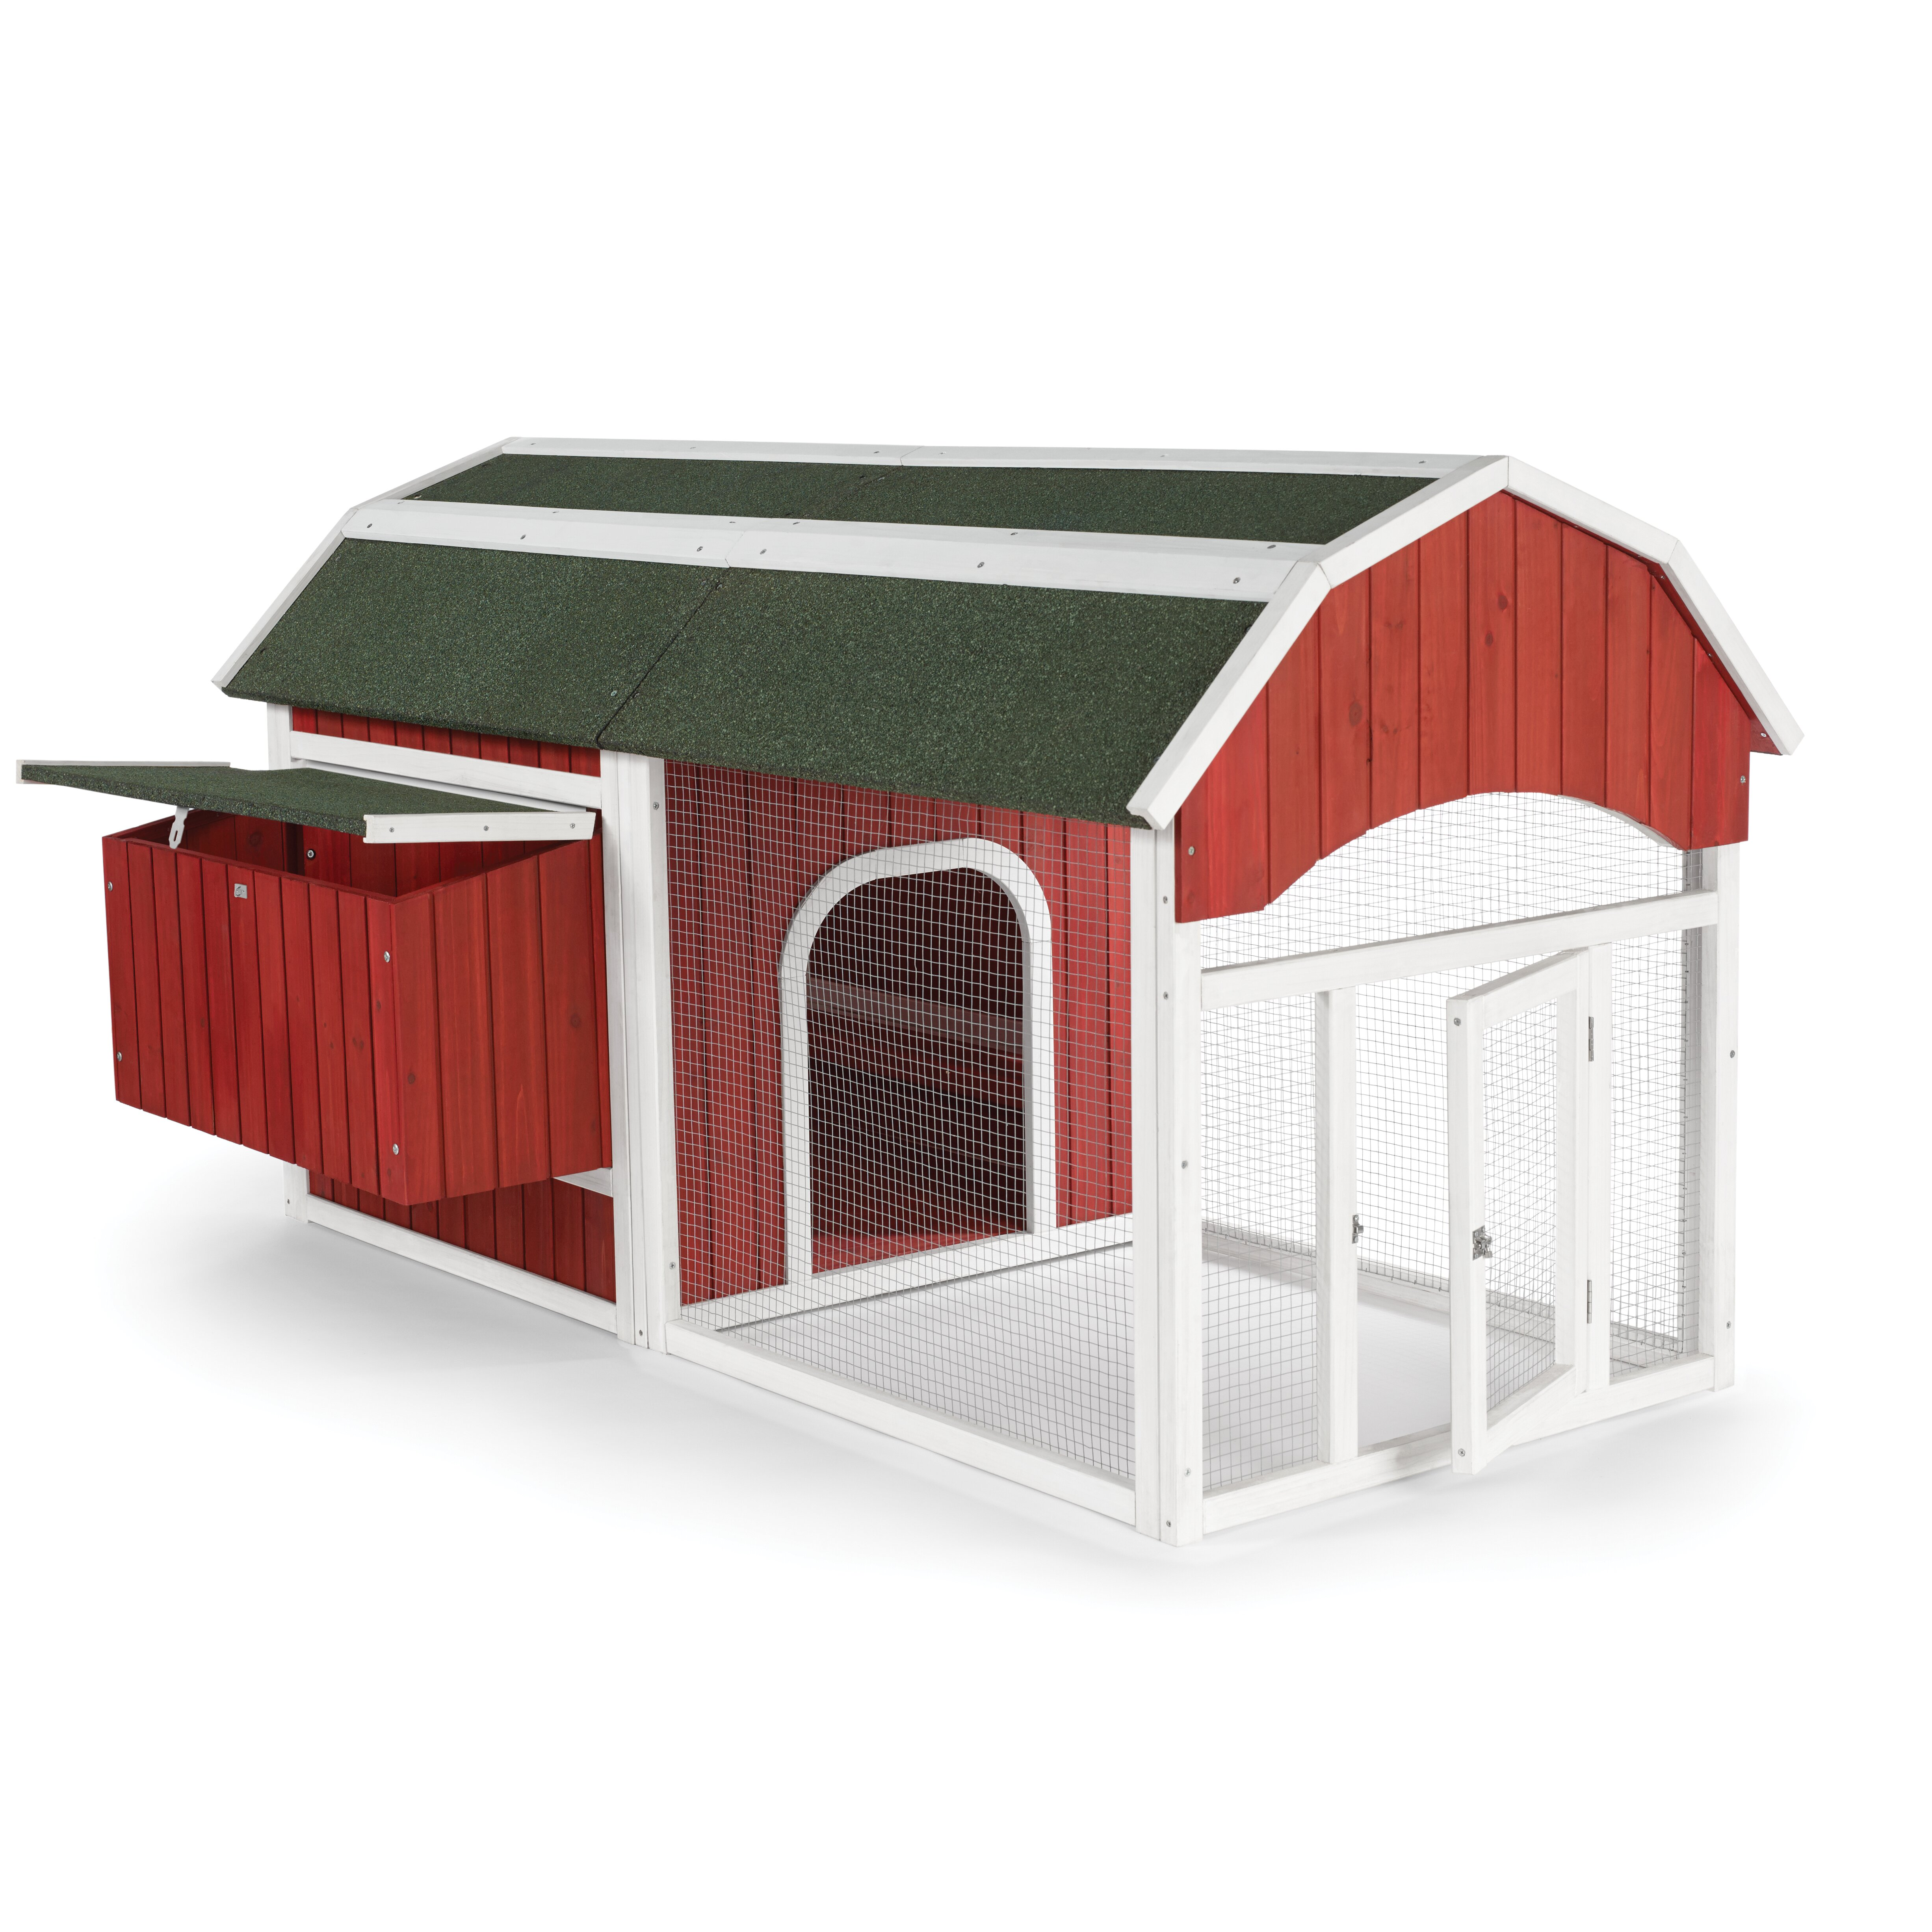 Prevue Hendryx Red Barn Small Chicken Coop & Reviews